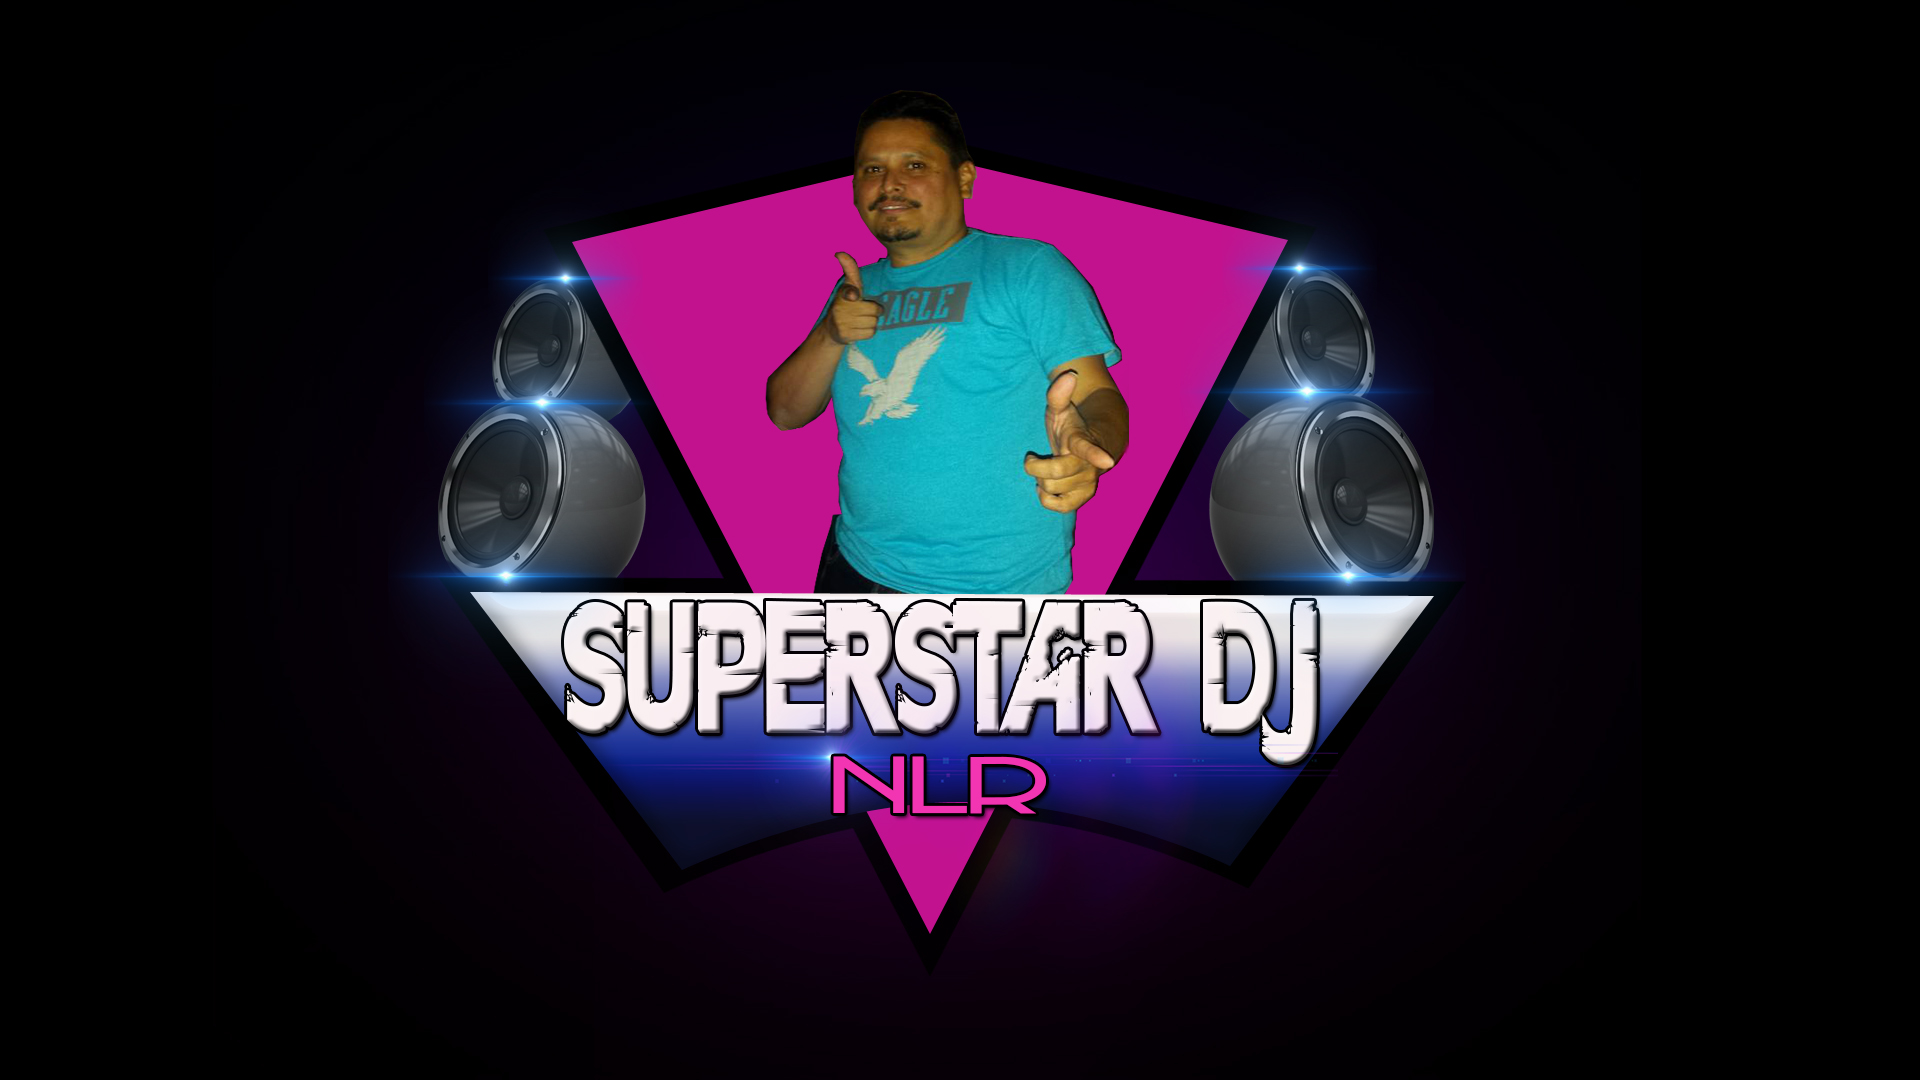 SuperStar Dj